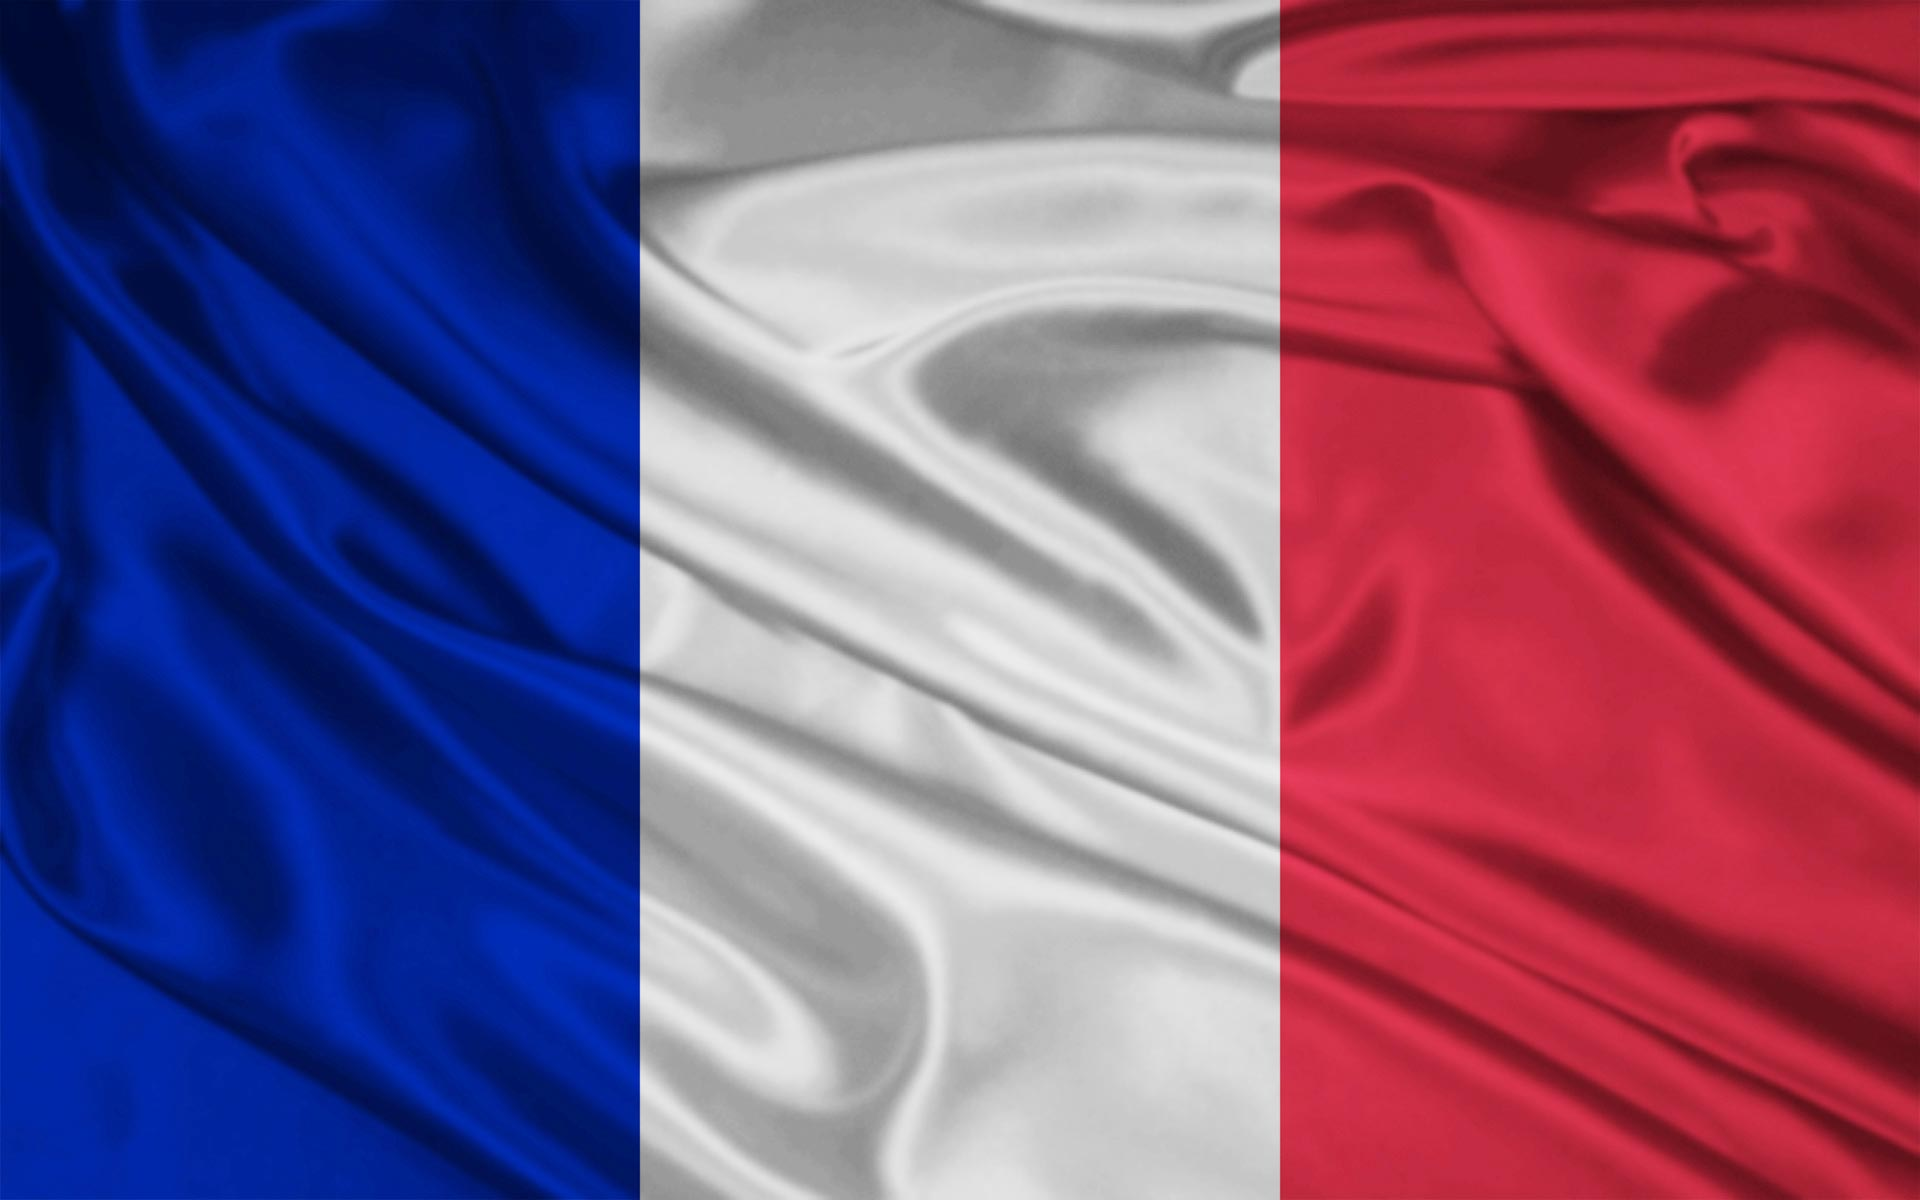 France Flag Desktop Wallpaper 50571